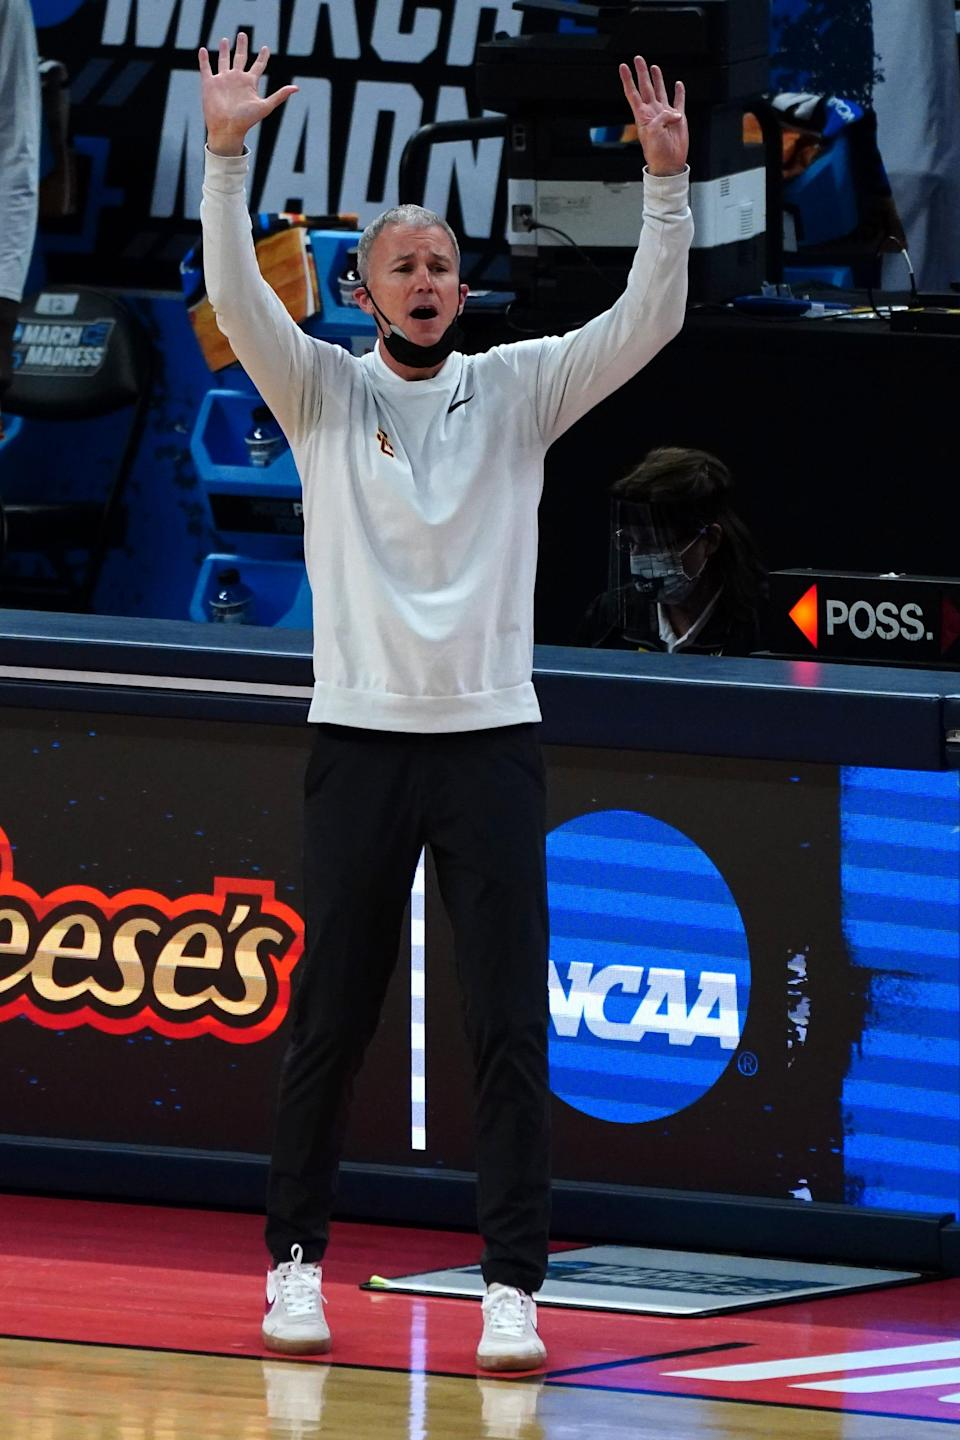 USC head coach Andy Enfield gestures from the sideline during the Tojan's first-round game agaist Drake.